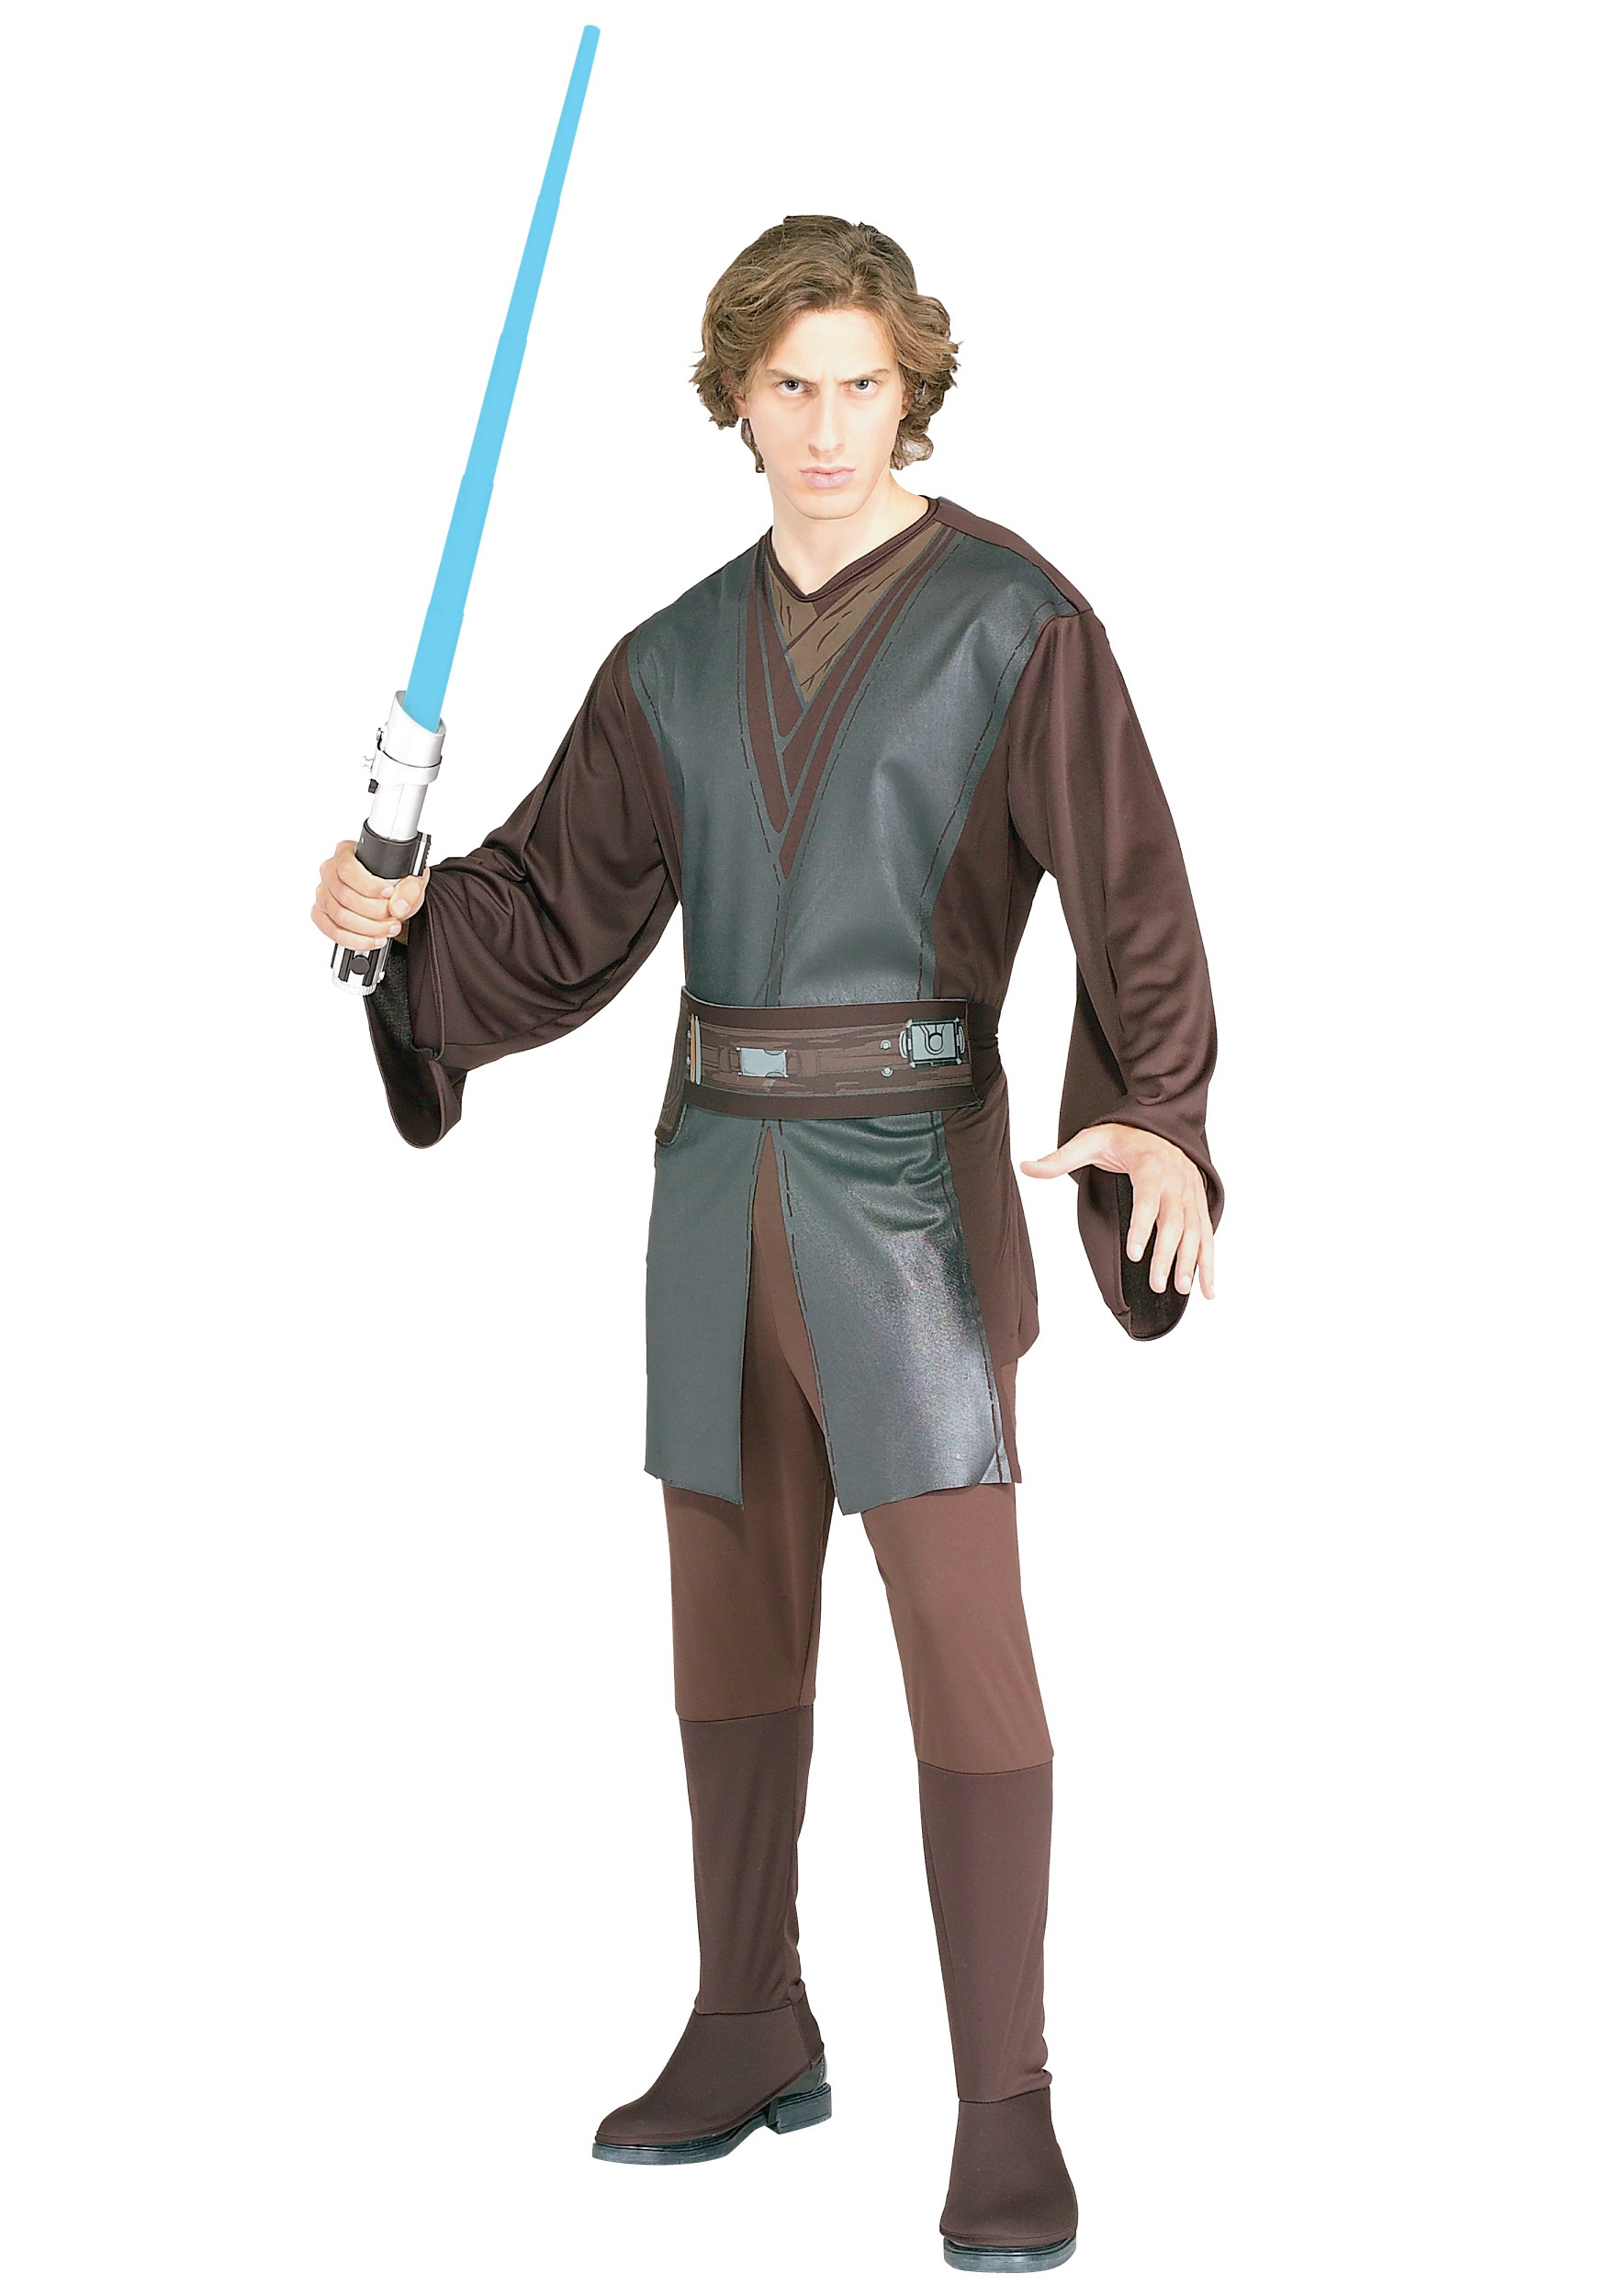 Star Wars Halloween Costumes.Anakin Skywalker Costume